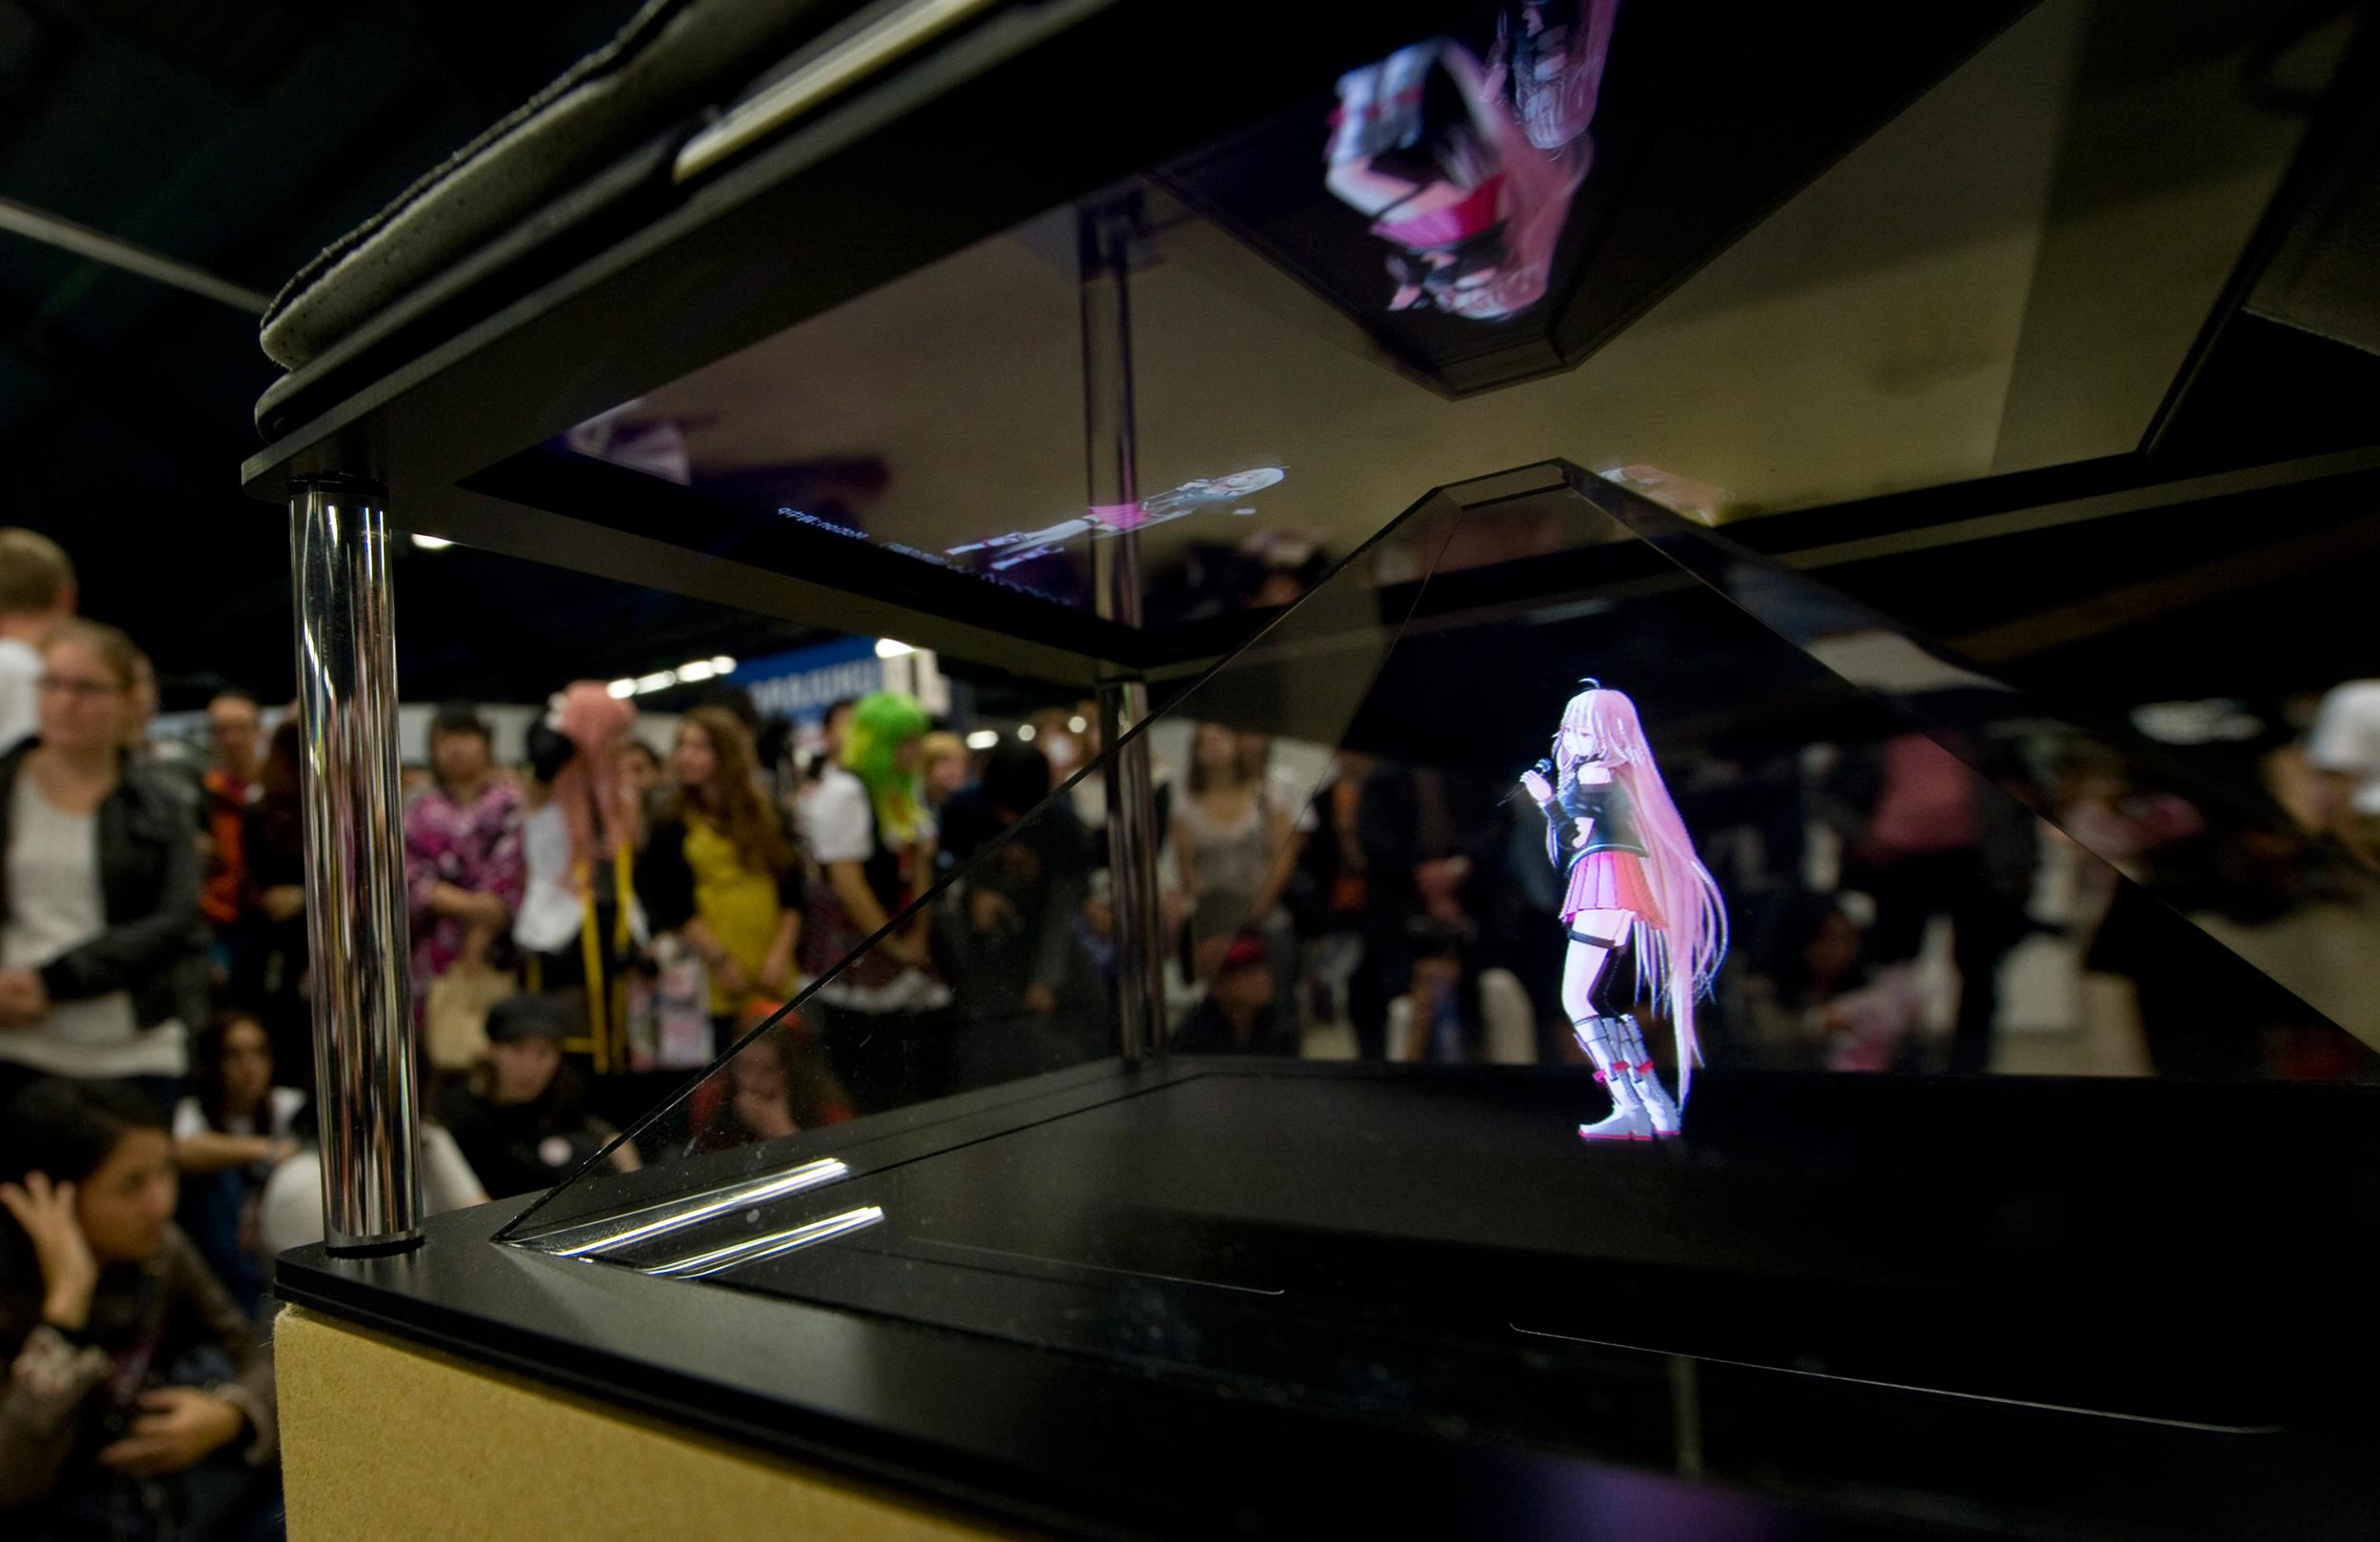 A hologram of Japanese singer Hatsune Miku performs during the Tokyo Crazy Kawaii event in Paris